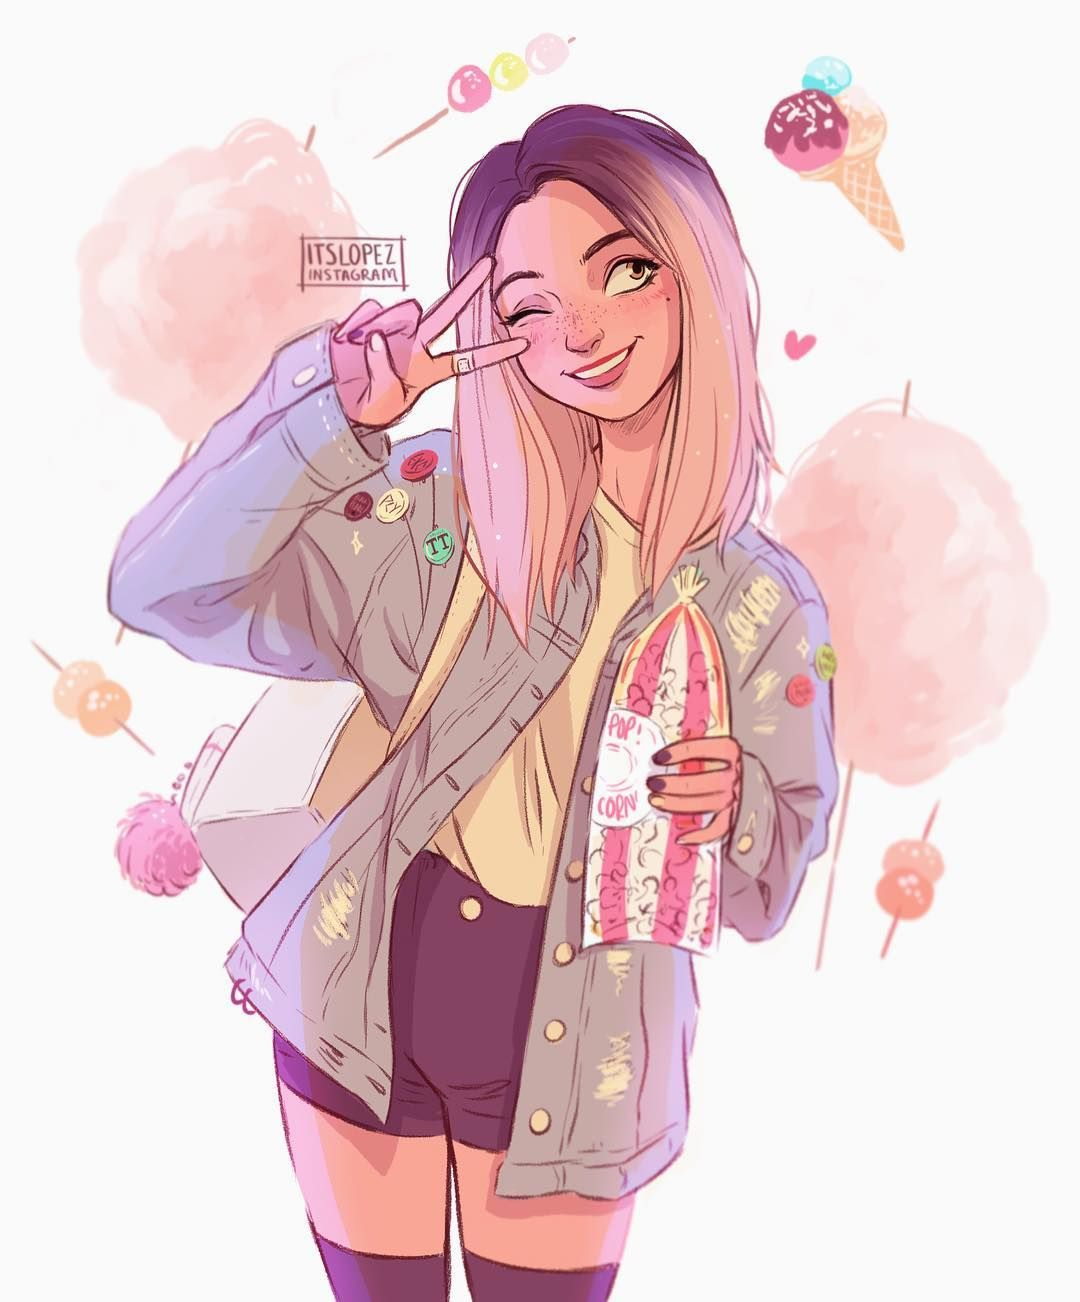 tumbler drawings girl outlines girl sketch drawing girls k likes comments laia l pez itslopez on instagram k likes comments laia l pez itslopez on